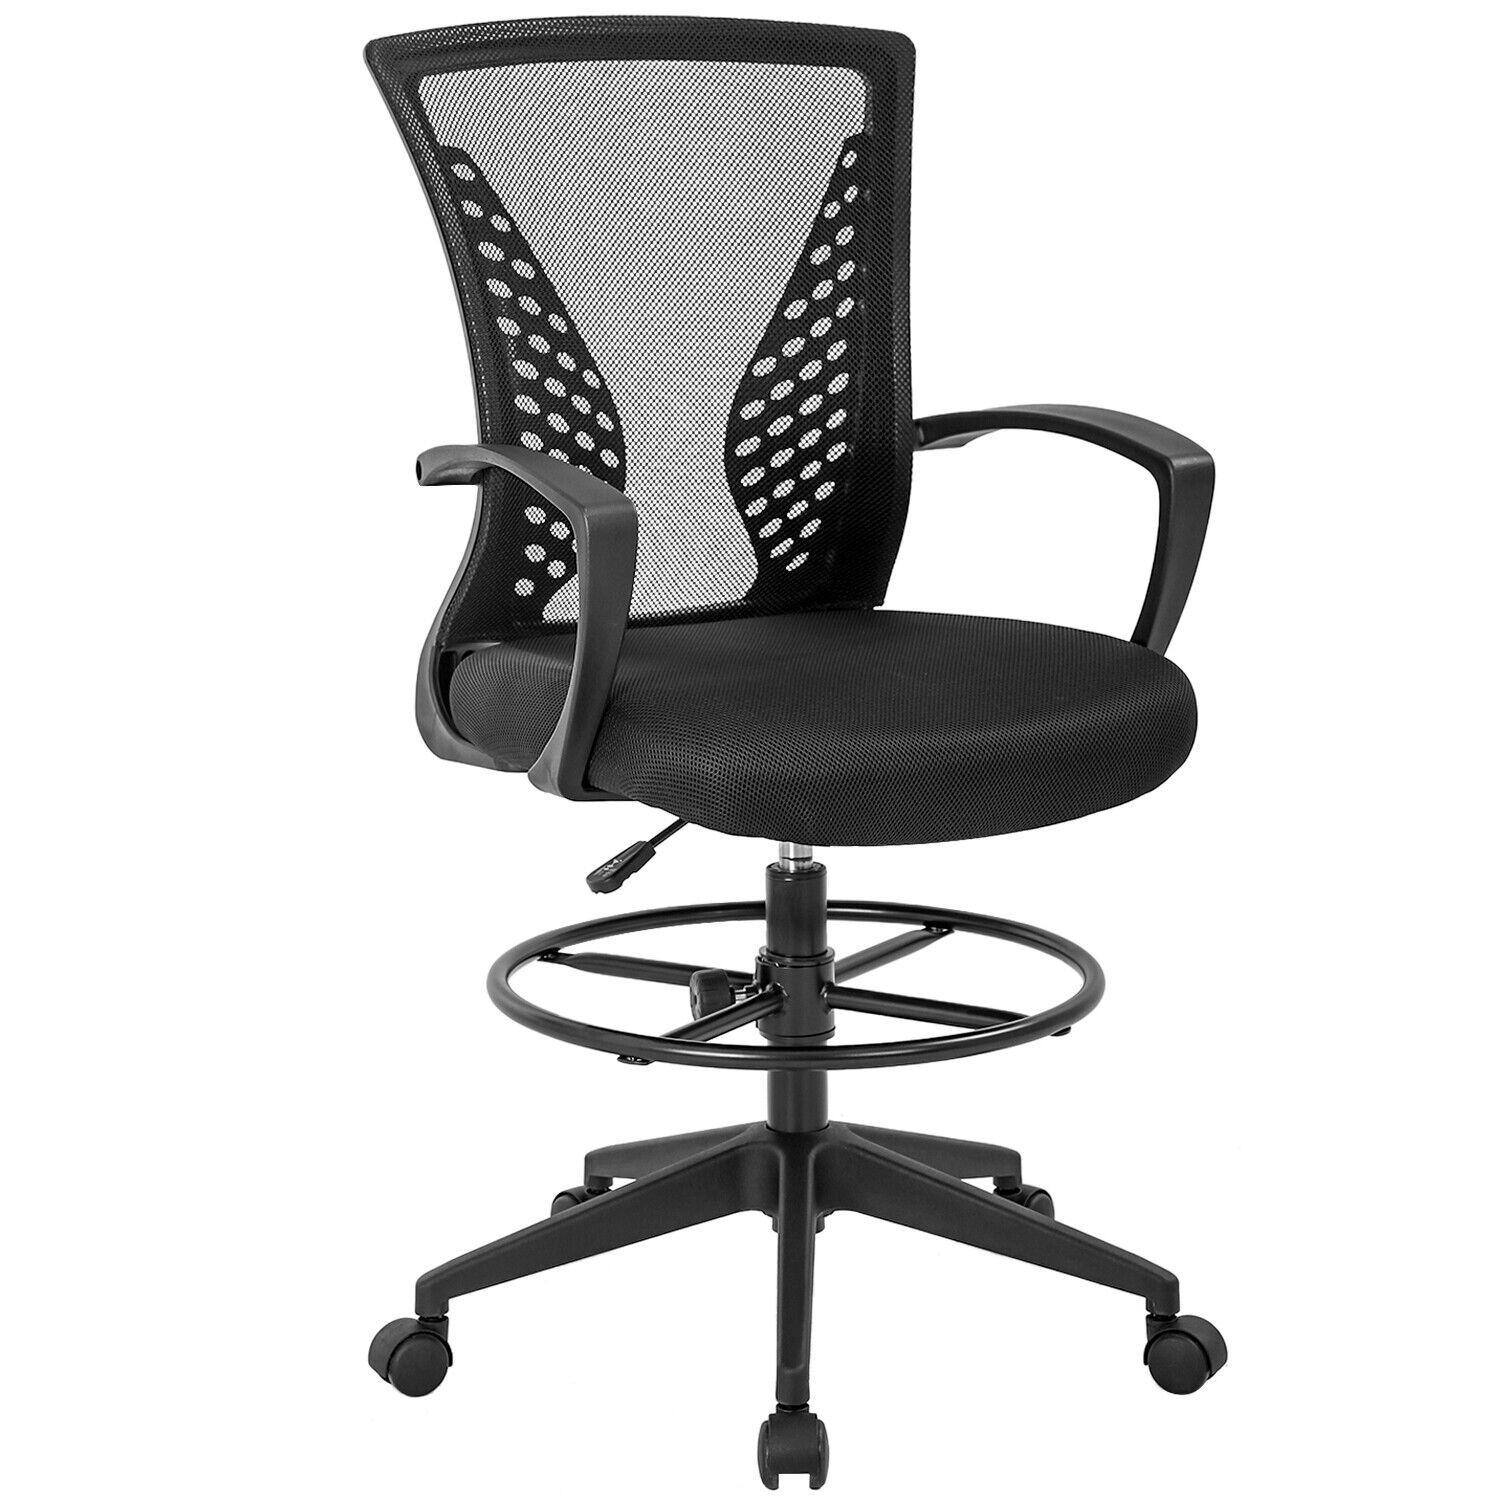 Drafting Chair Tall Office Chair Adjustable Height with Arms Foot Rest Back Business & Industrial